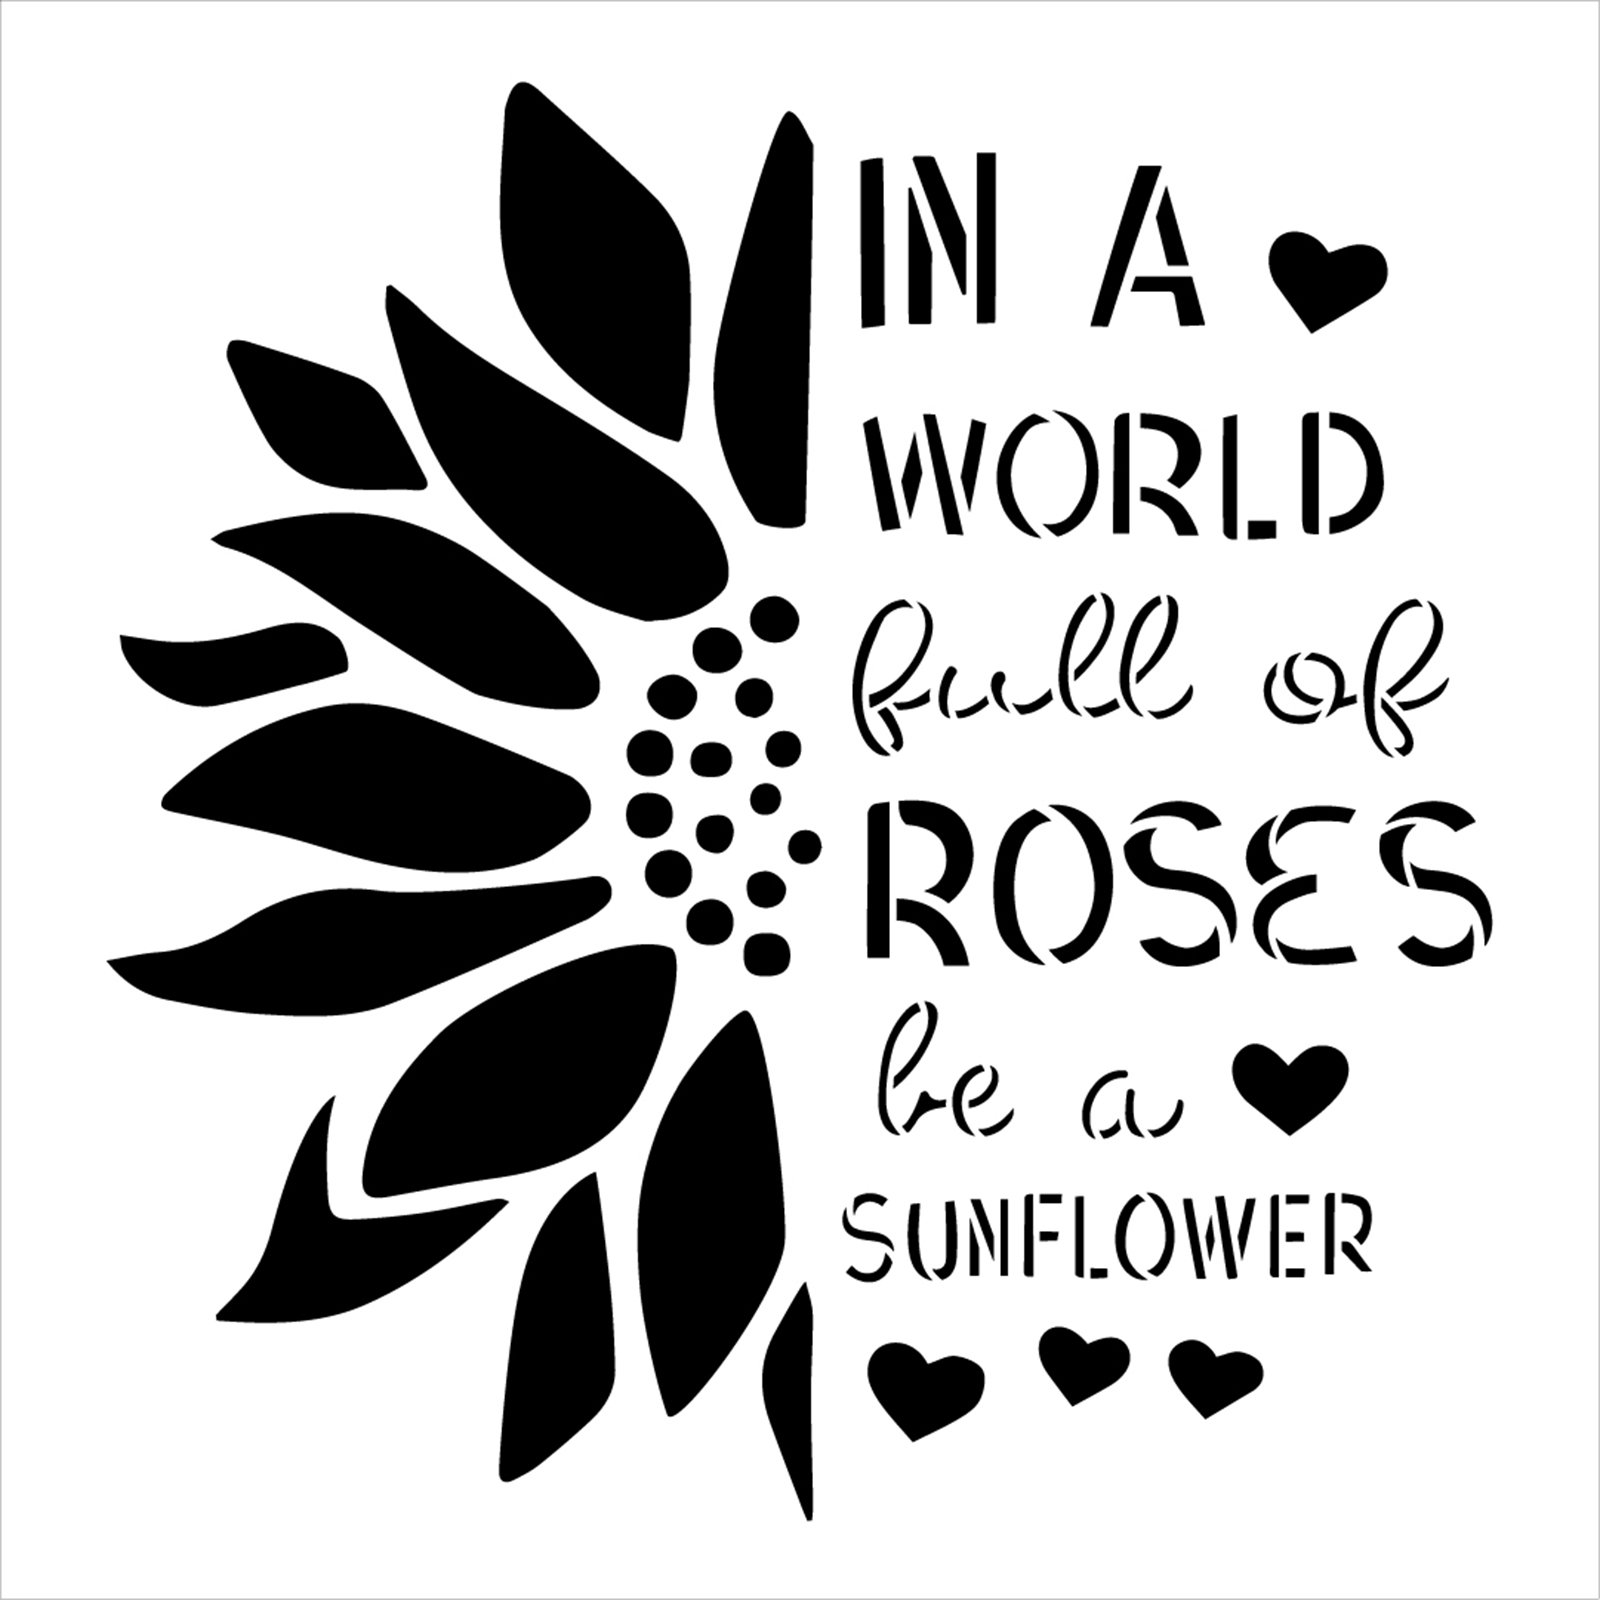 World Full of Roses Be a Sunflower Stencil by StudioR12 | DIY Summer Home Decor | Craft & Paint Garden Wood Sign Reusable Mylar Template | Select Size